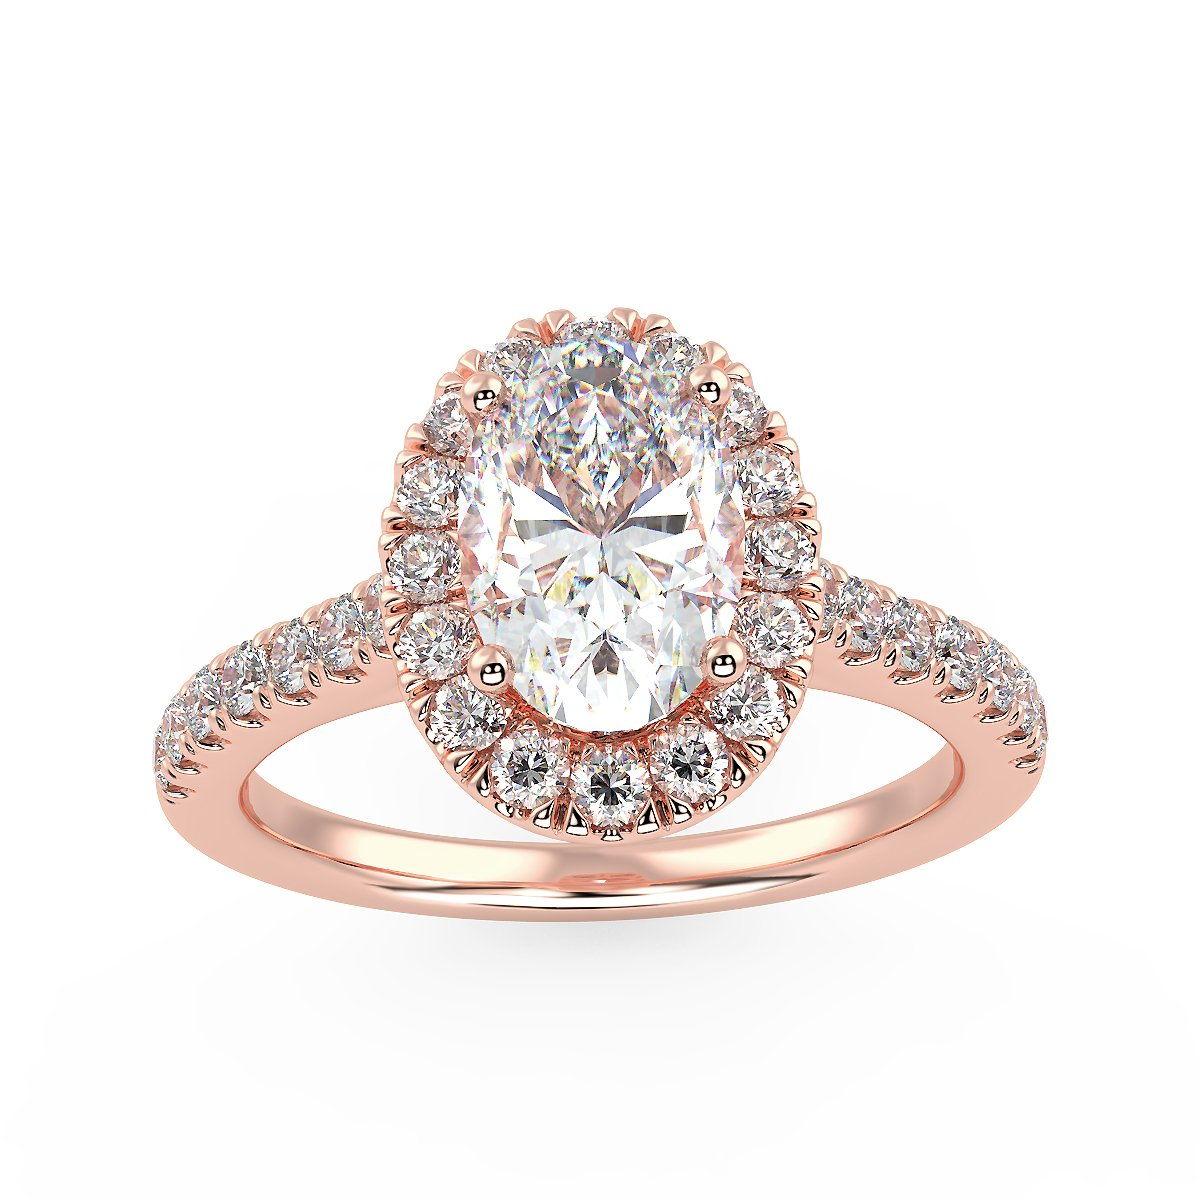 Ellipse Engagement Ring in Rose Gold